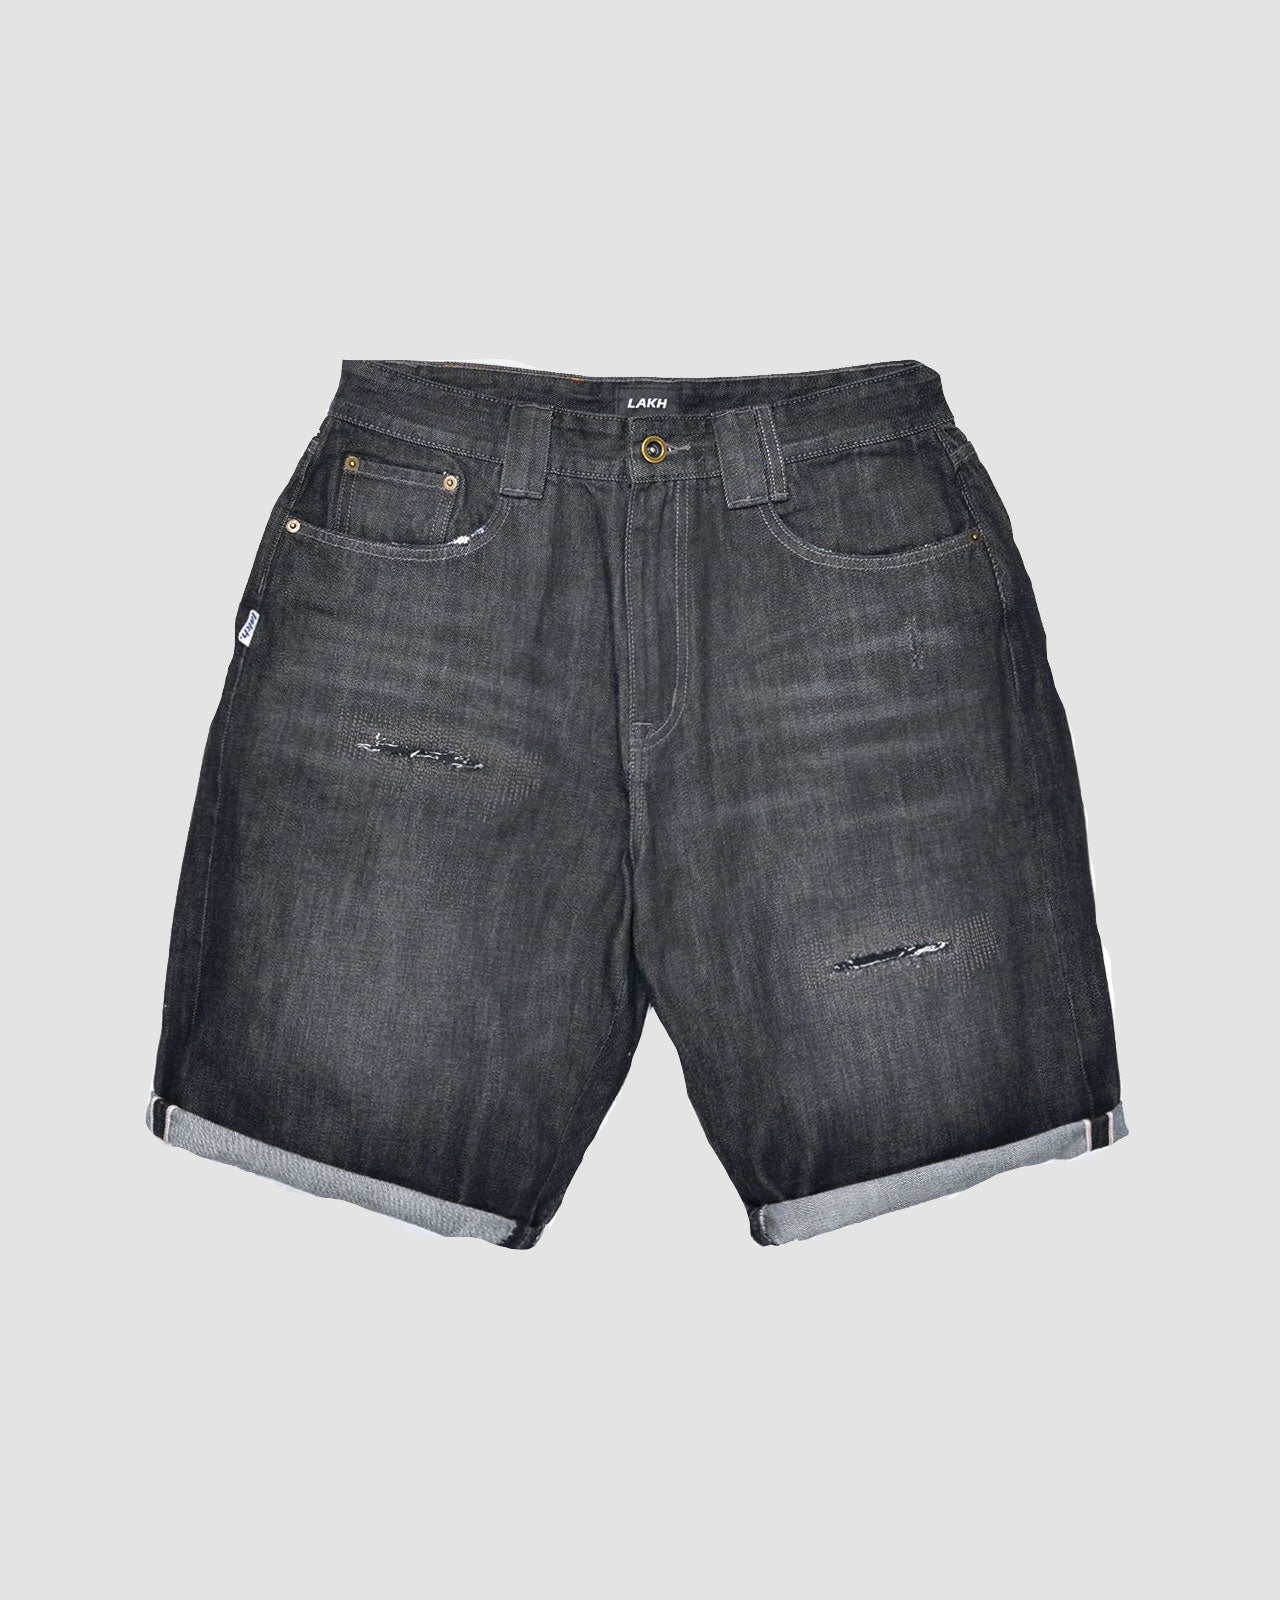 Distressed Denim Shorts - Black